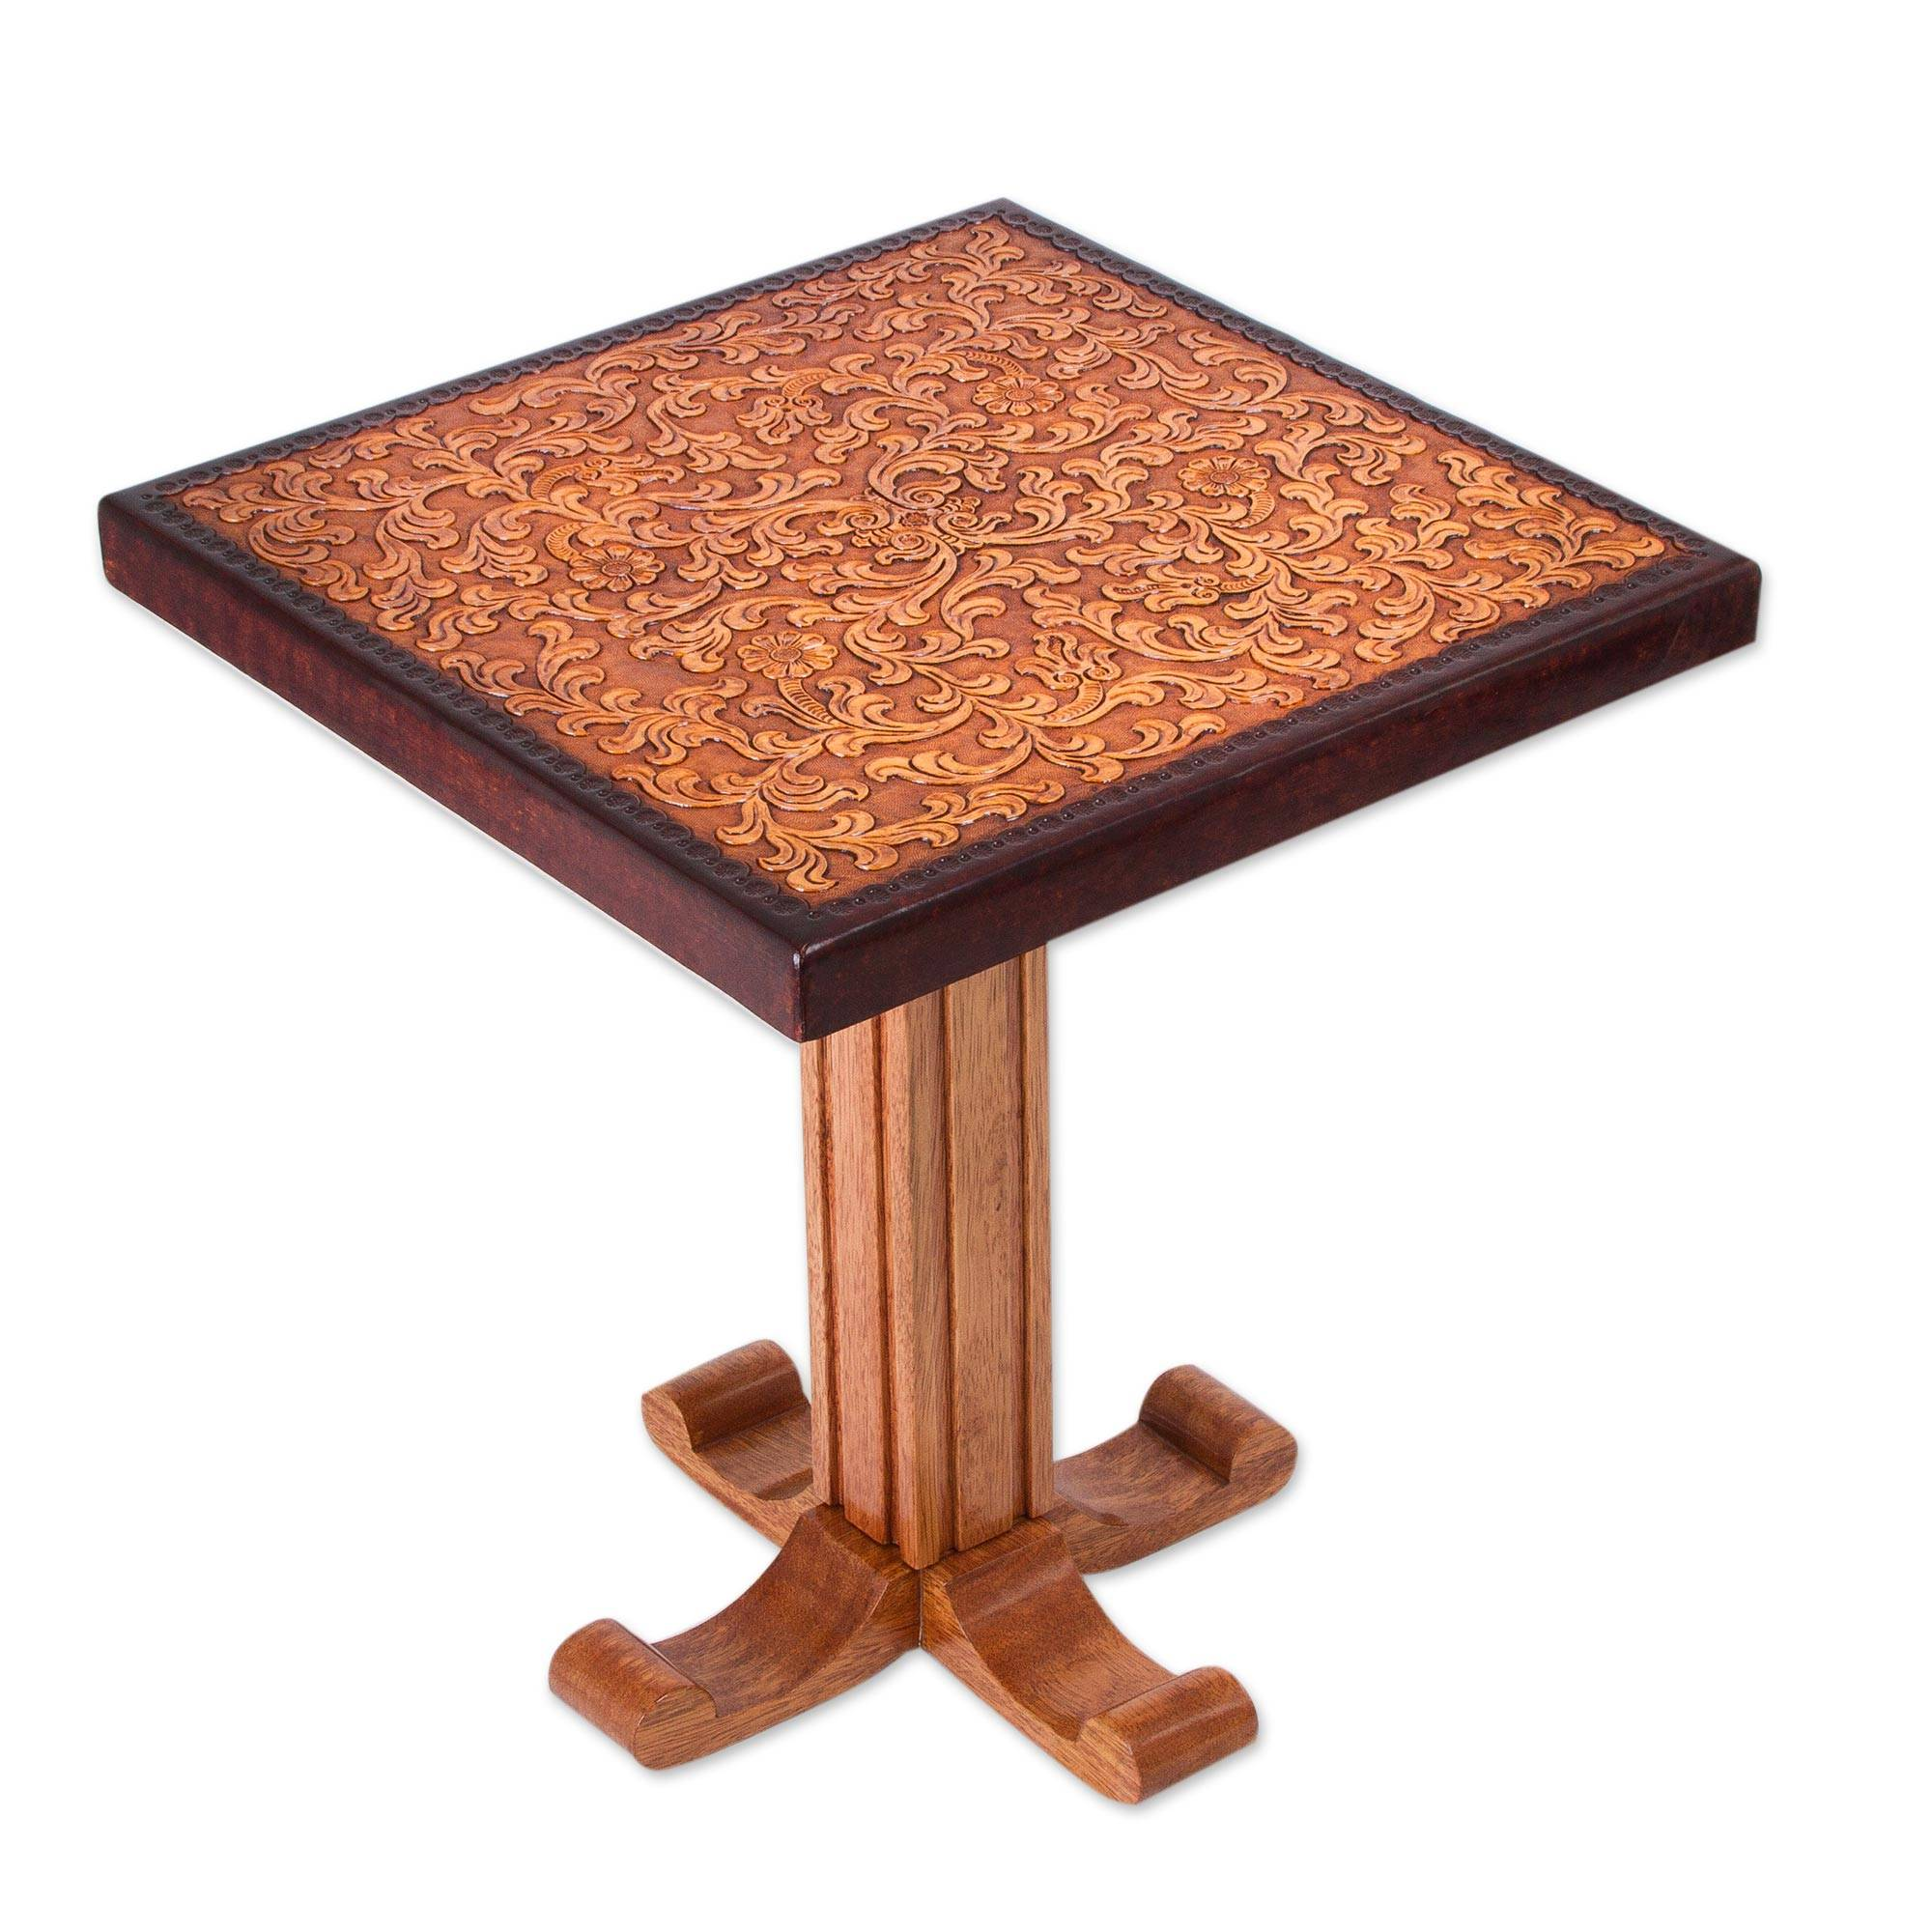 Colonial wood leather brown side table furniture colonial colonial wood leather brown side table furniture colonial marigold novica biocorpaavc